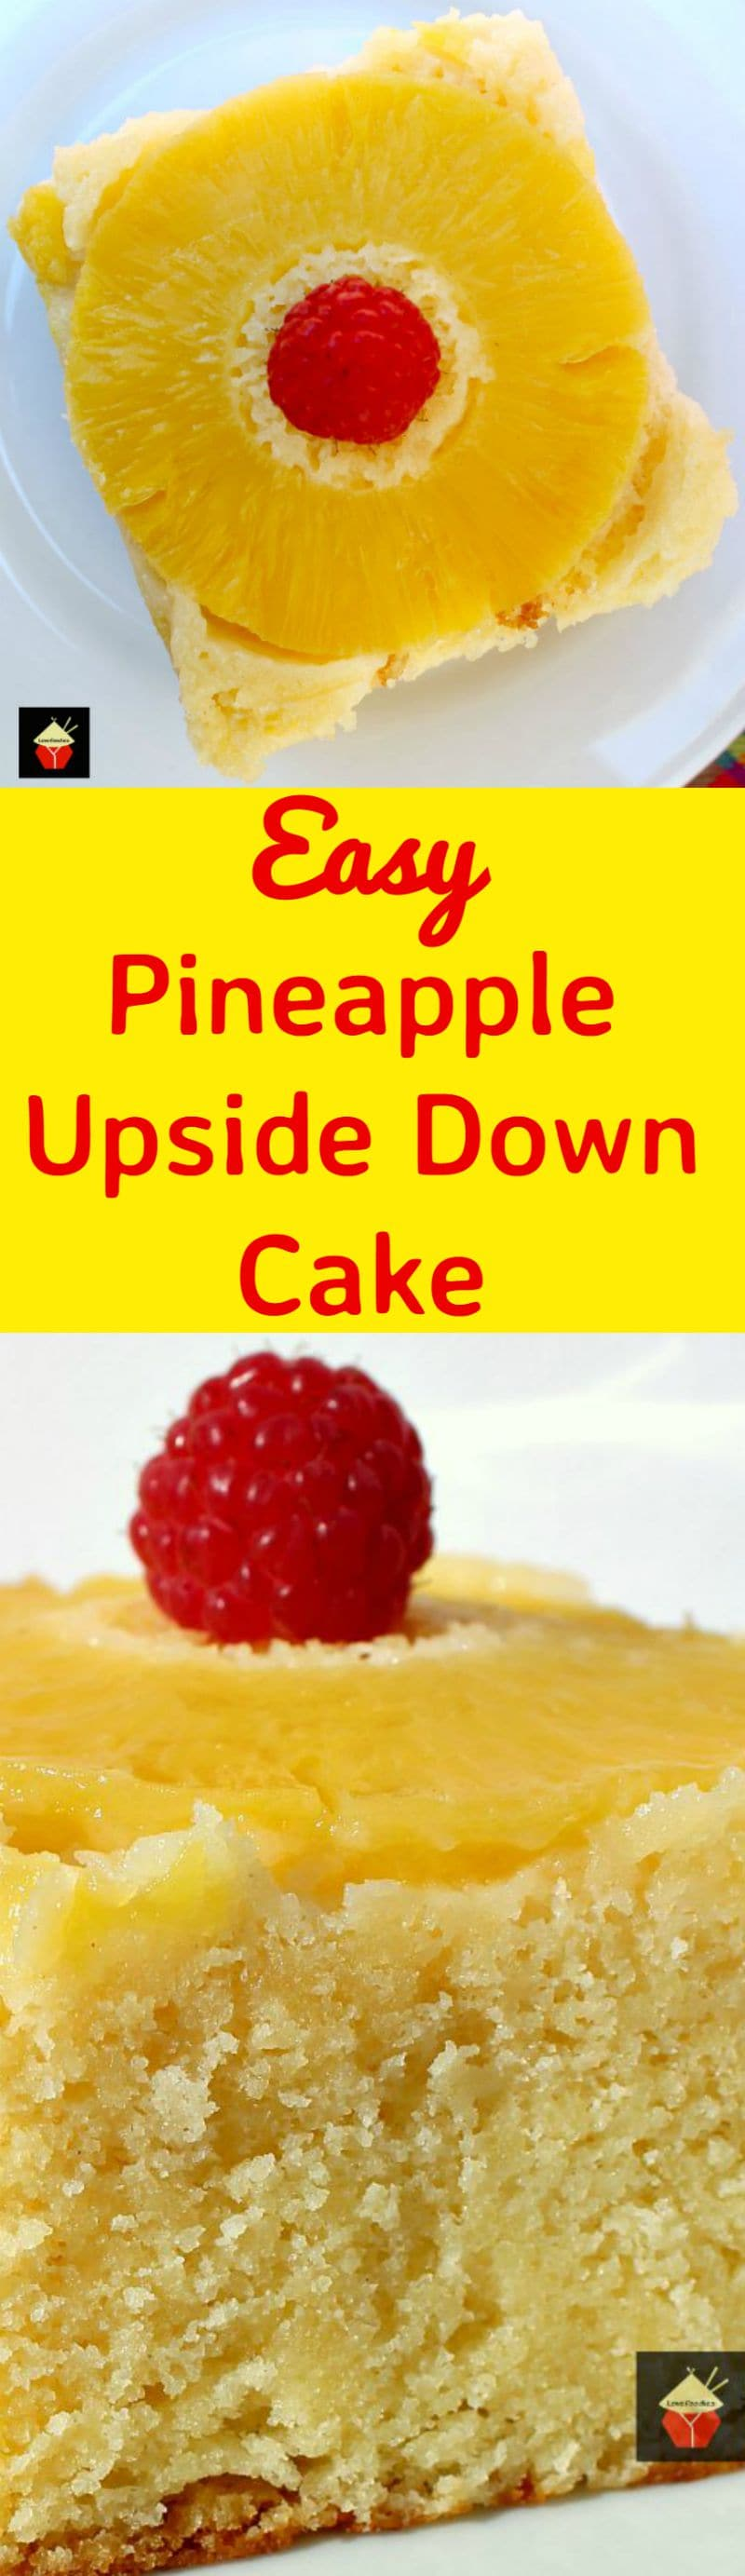 Pineapple Upside Down Cake Recipe  Serving